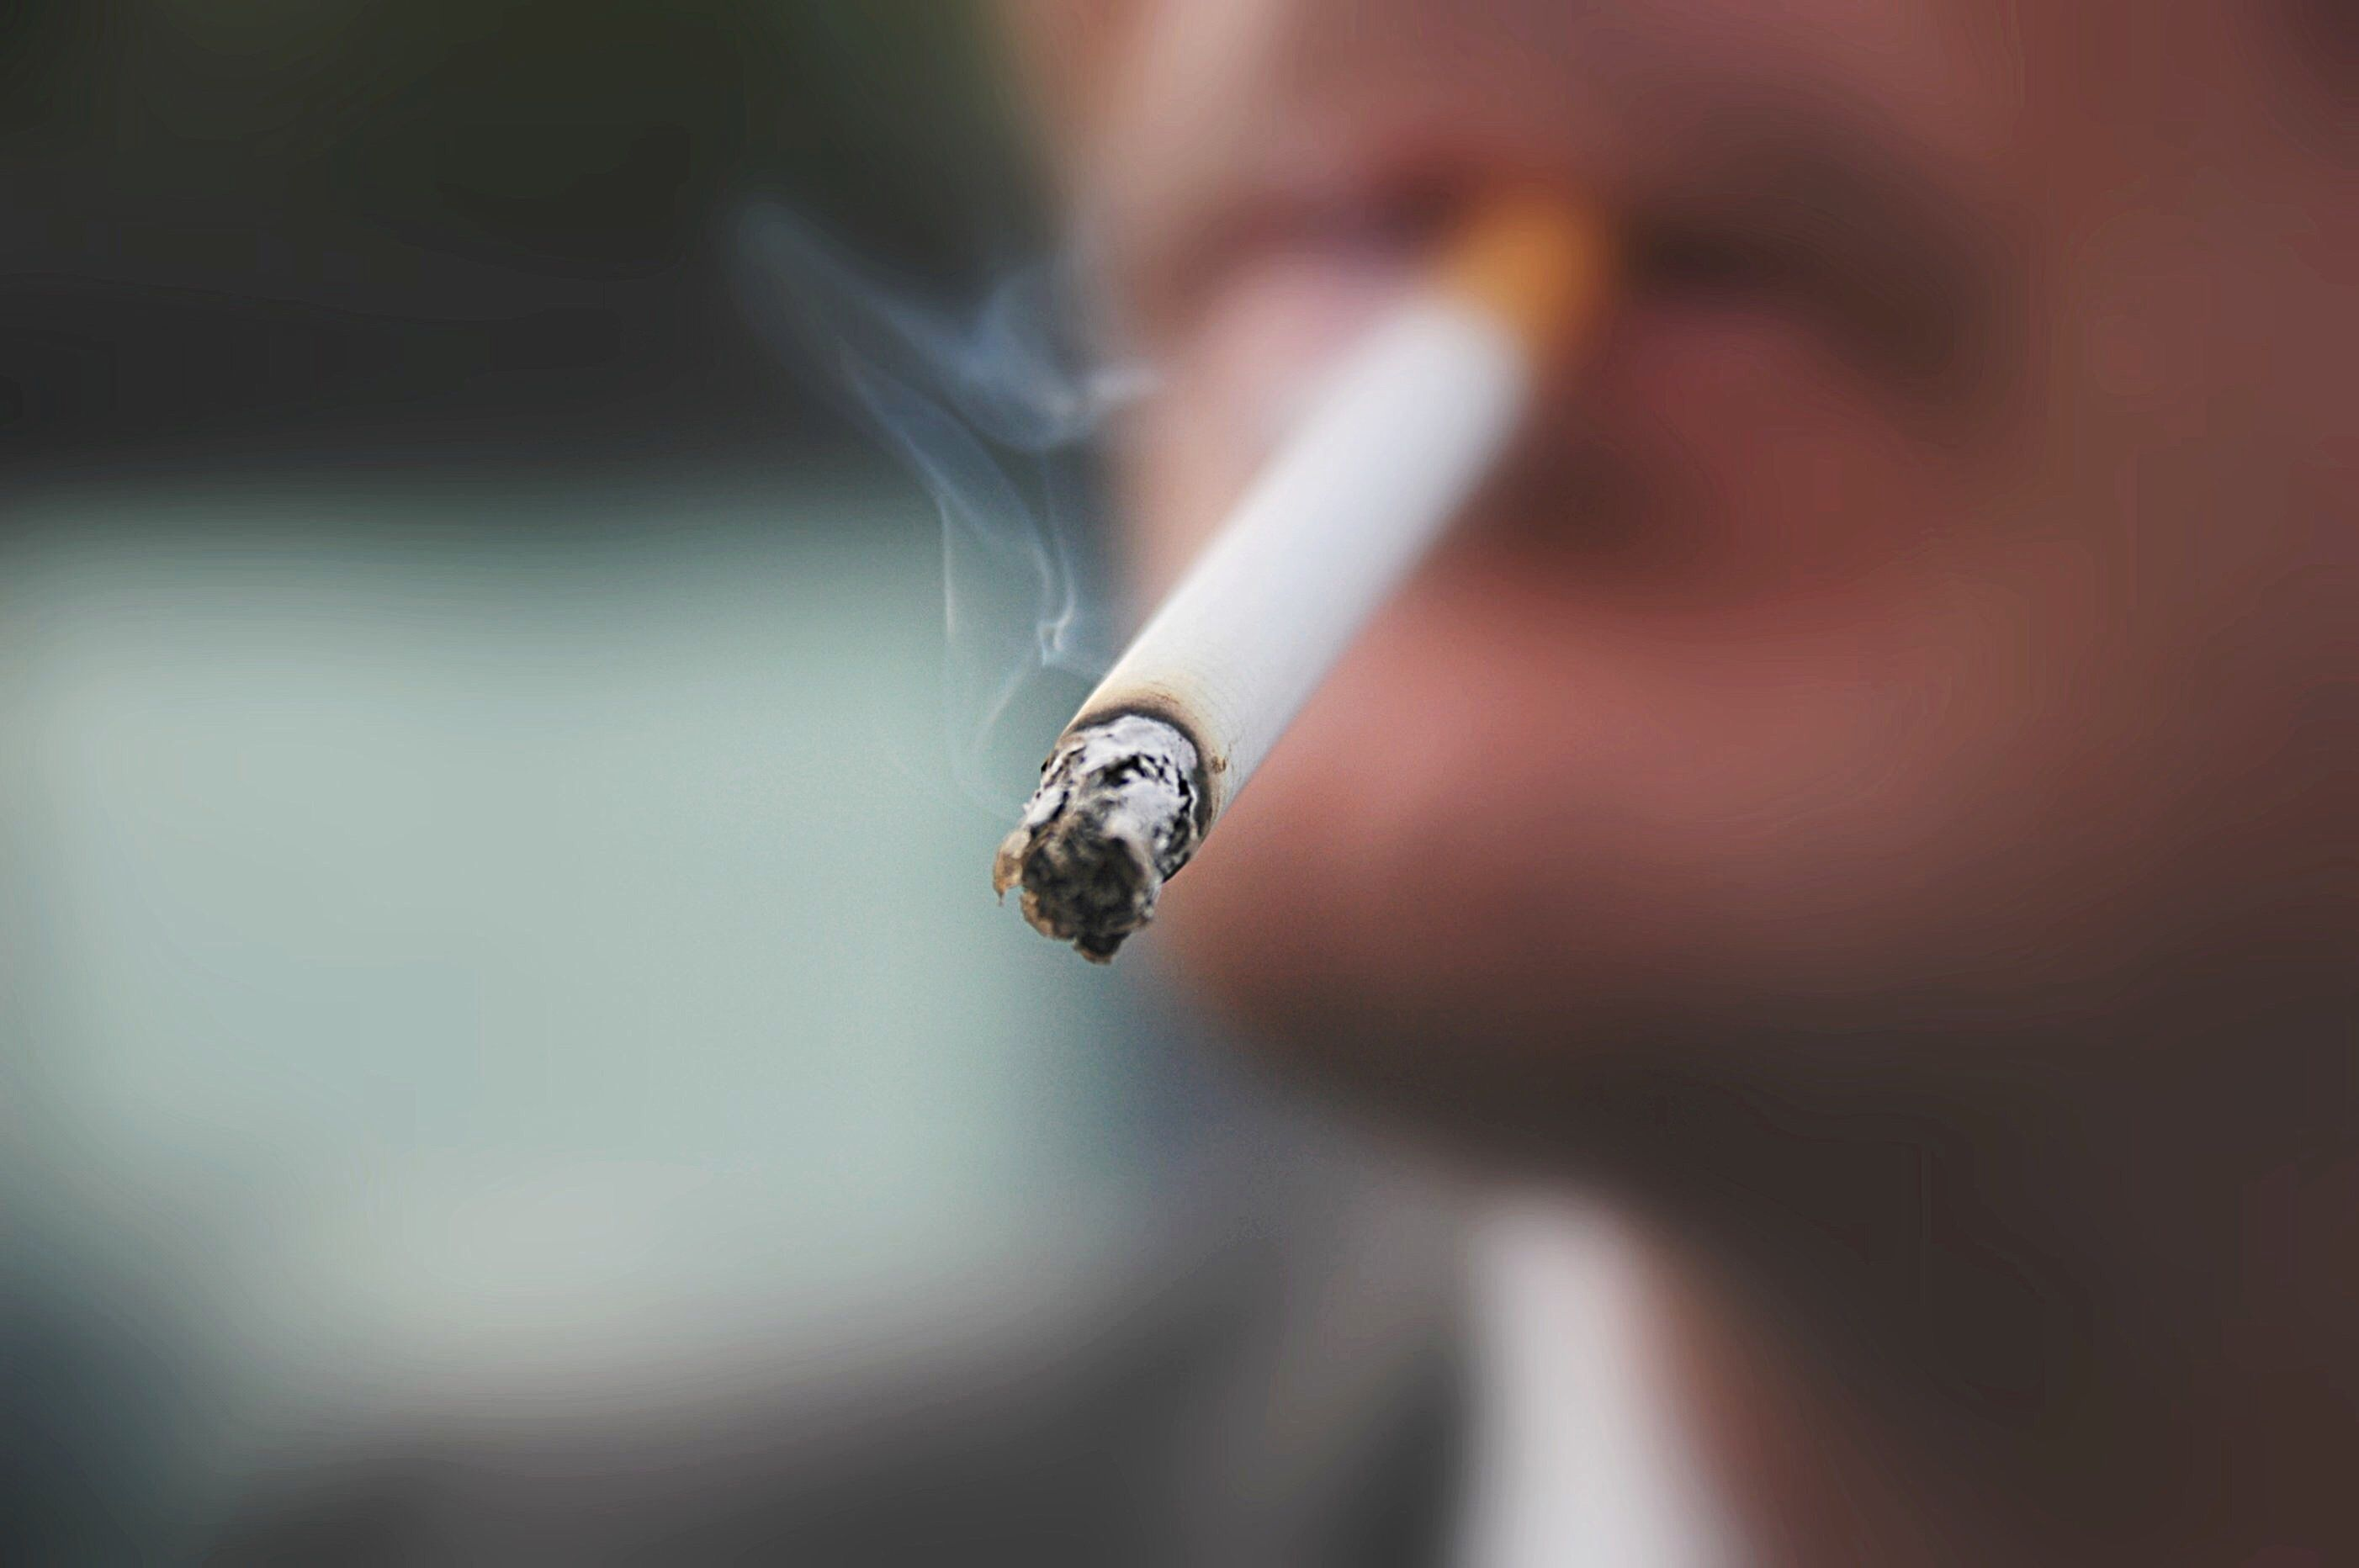 Should smokers be PAID to quit cold